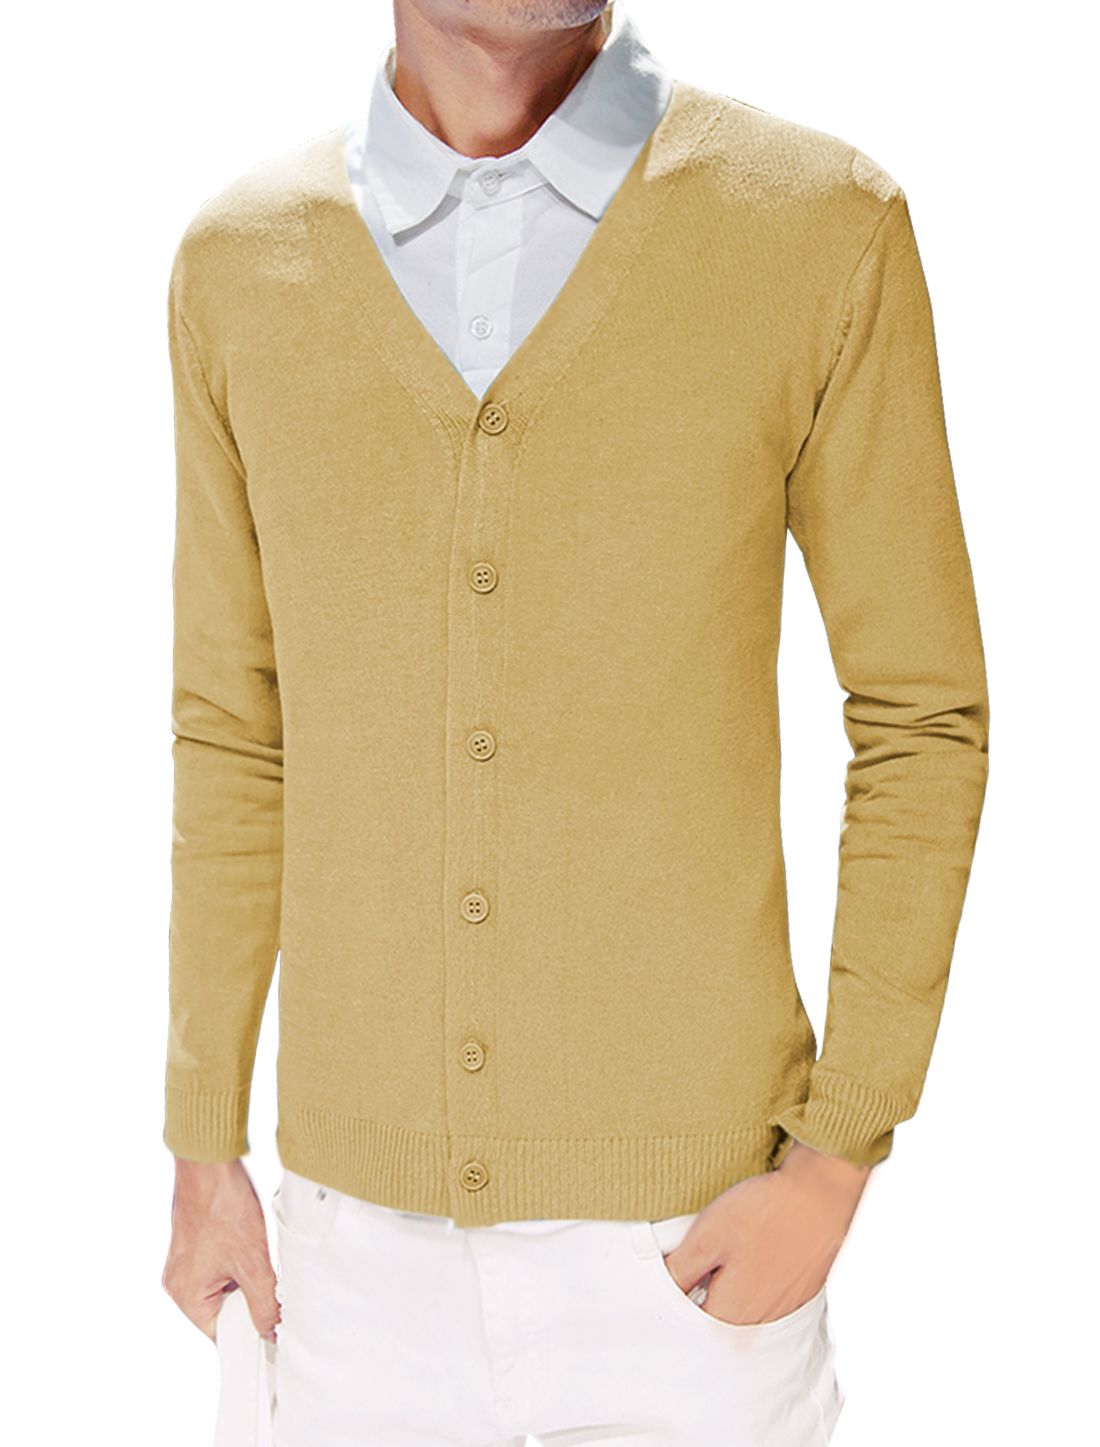 Men Slim Fit Knitted Button Closed Long Sleeves Cardigan Yellow S